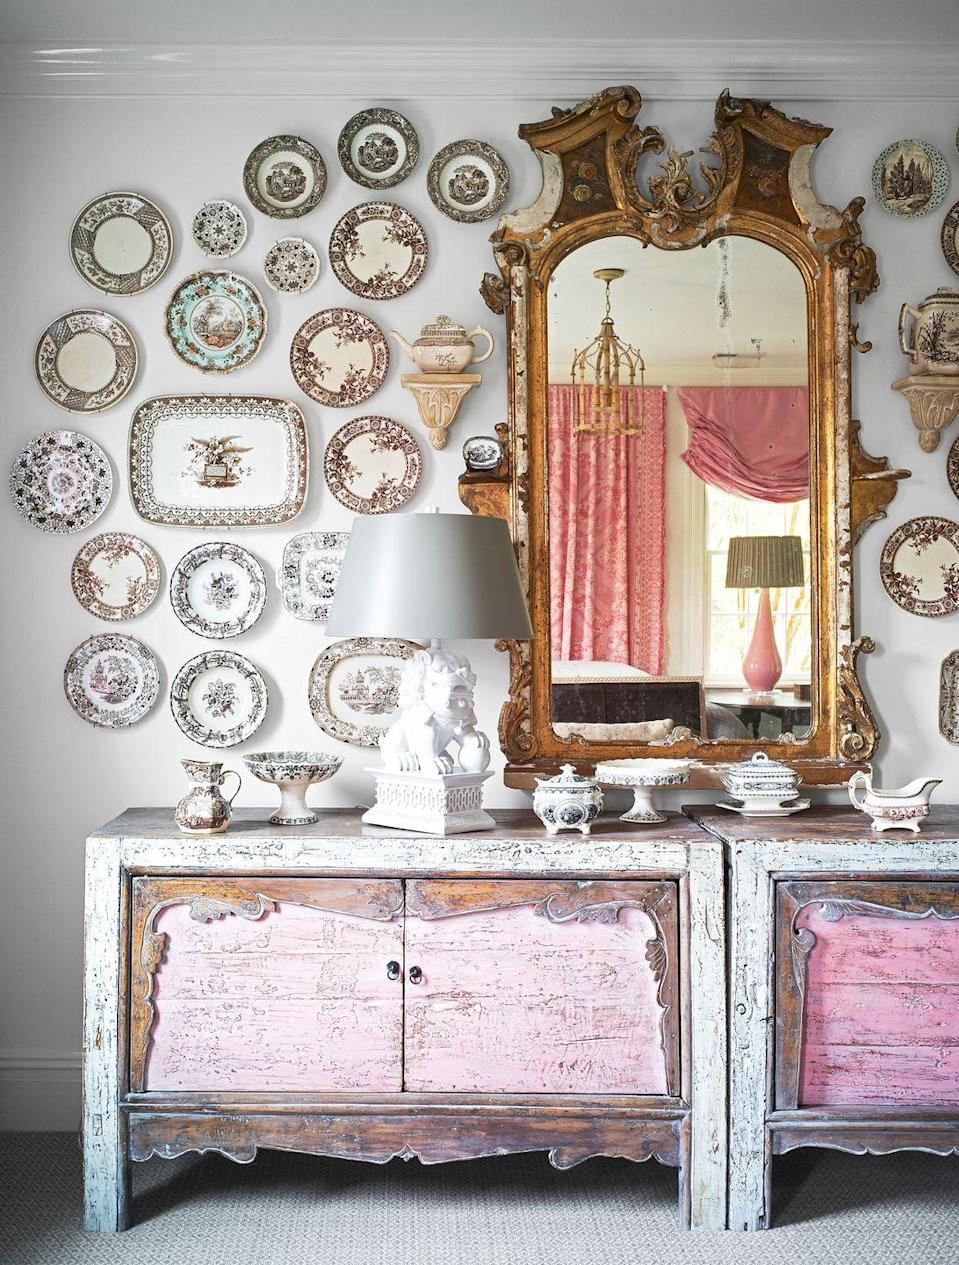 "<p>If you have an extensive China collection, why not put it up for all to see? It's an unexpected twist to the classic gallery wall look, too, as you can see in this blush pink living room designed by <a href=""https://janiemolster.com/"" rel=""nofollow noopener"" target=""_blank"" data-ylk=""slk:Janie Molster"" class=""link rapid-noclick-resp"">Janie Molster</a>. Once you've mapped out the gallery wall, all you need are some picture hangers. <a href=""https://www.housebeautiful.com/design-inspiration/a29652925/how-to-hang-plates-on-wall/"" rel=""nofollow noopener"" target=""_blank"" data-ylk=""slk:Get a tutorial here."" class=""link rapid-noclick-resp"">Get a tutorial here. </a></p>"